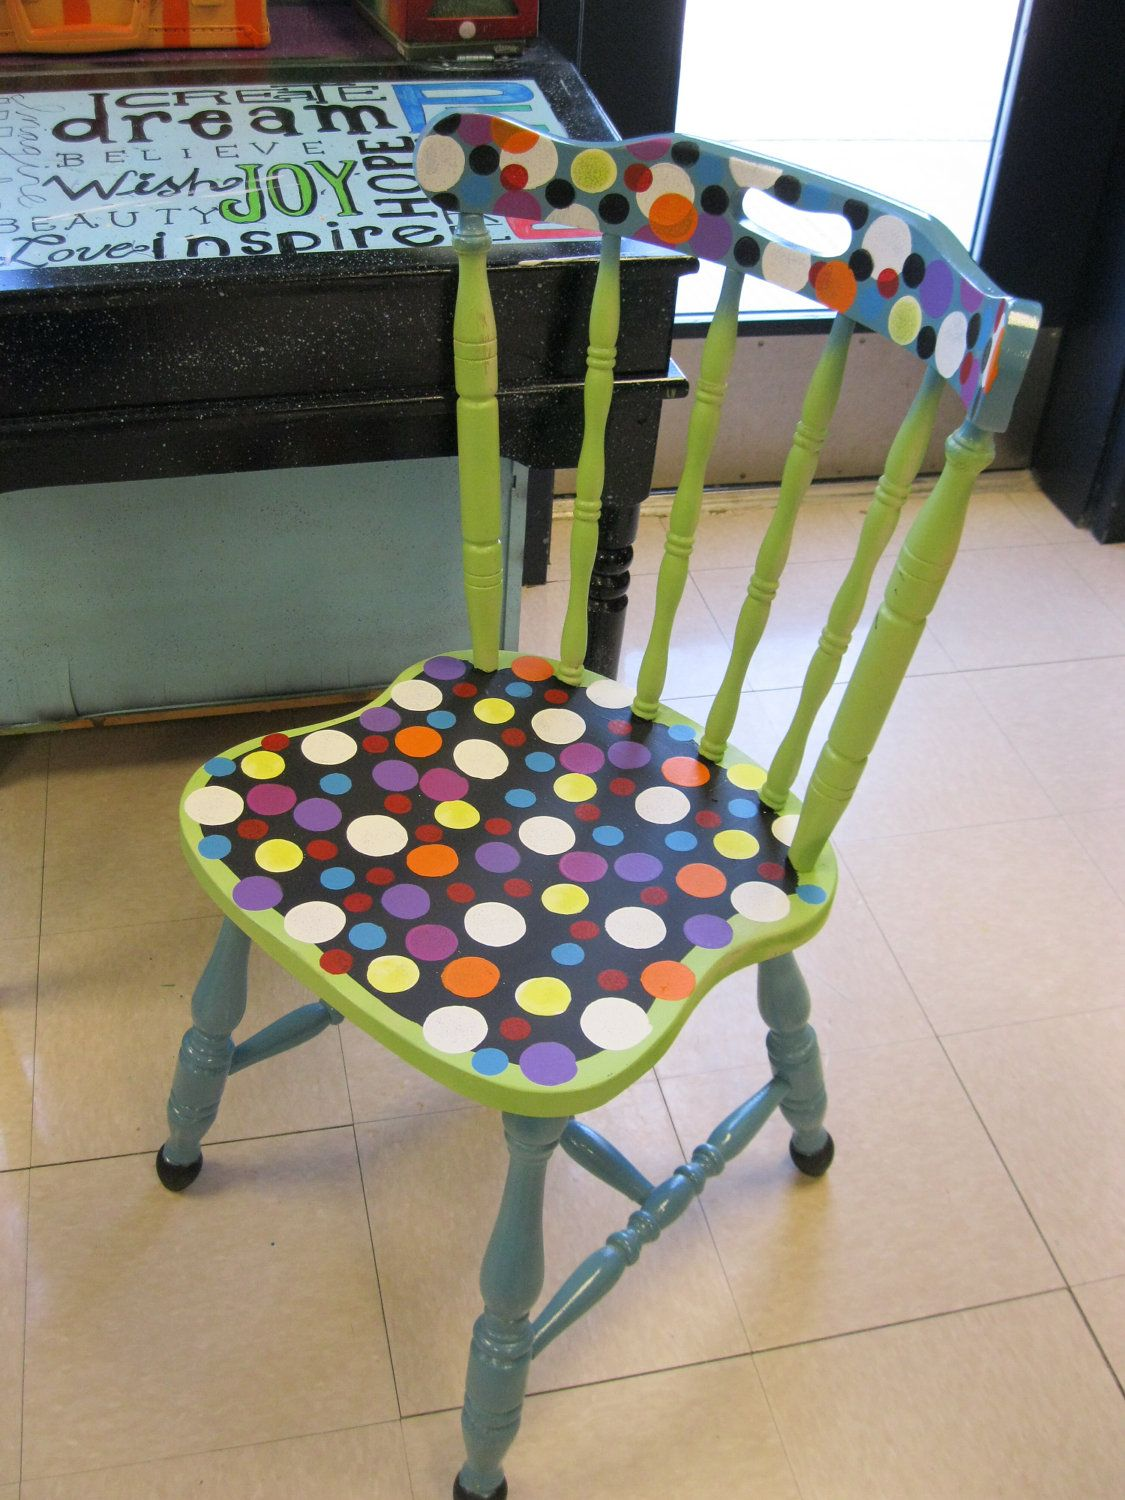 Jez4U Adorable Handpainted Old Wood Sturdy Chair Made New And Fresh Again  With Cheerful Paint I